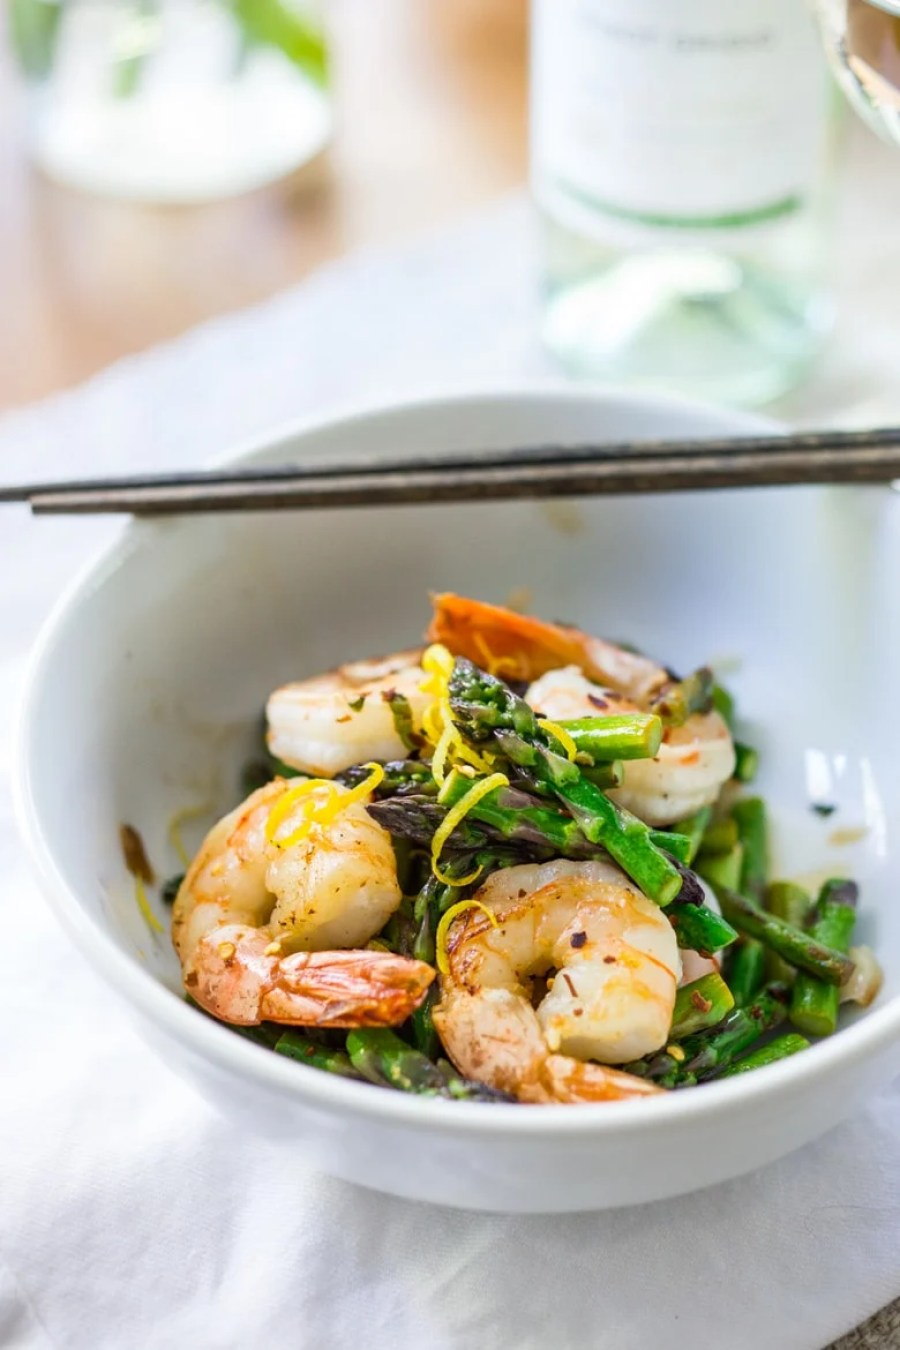 15 Minute Lemon Basil Garlic Shrimp and Asparagus- a delicious and healthy skillet meal that can be made with shrimp, tofu or chicken. | www.feastingathome.com #glutenfree